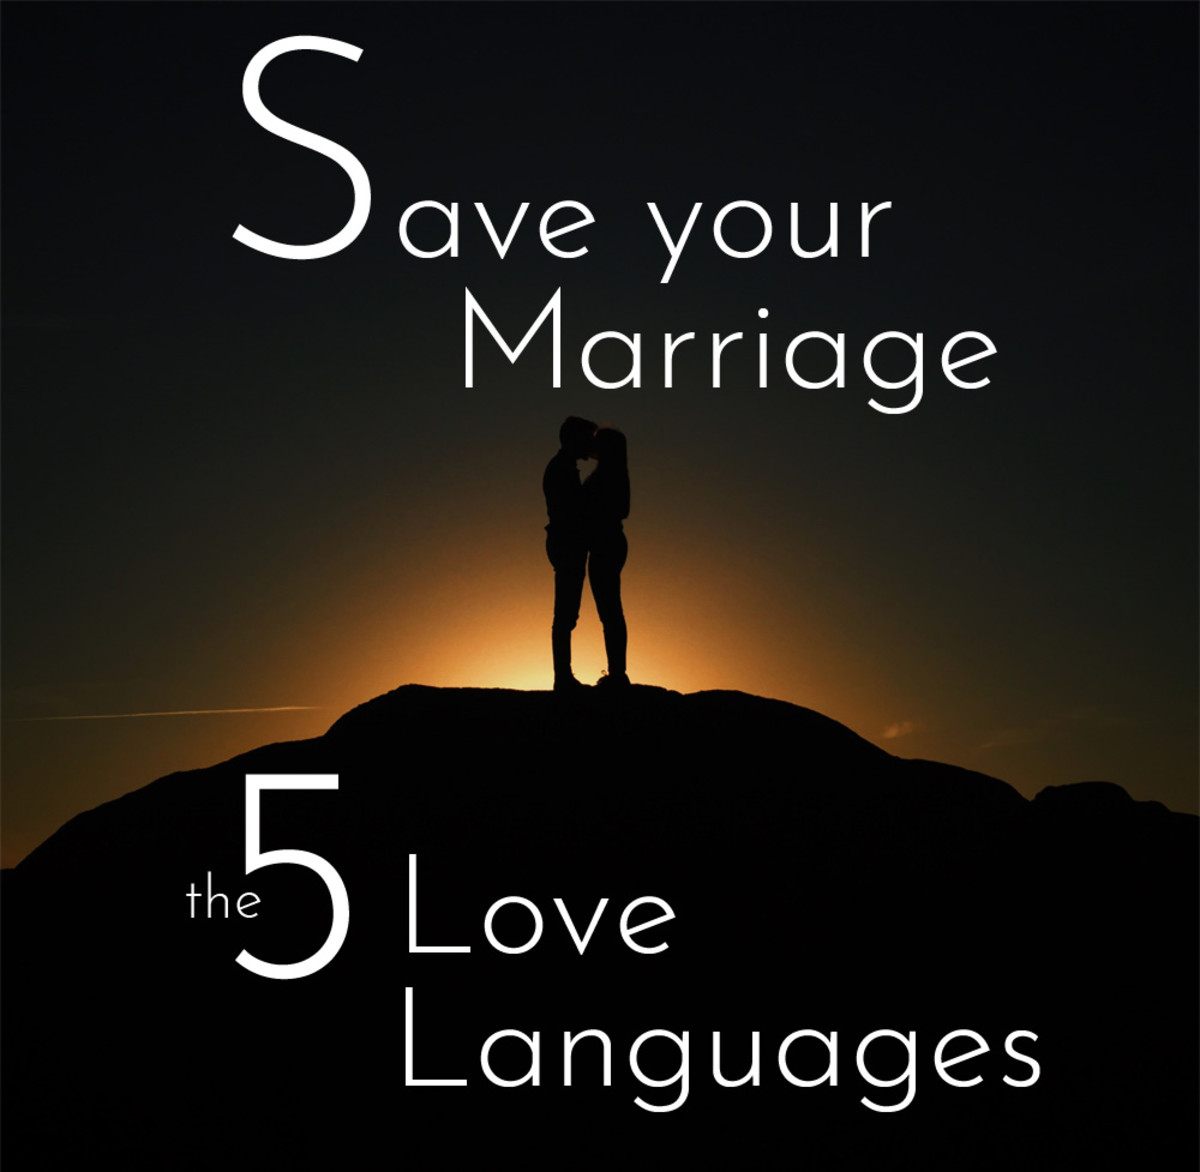 How the 5 Love Languages Can Save Your Marriage and Improve Your Relationship